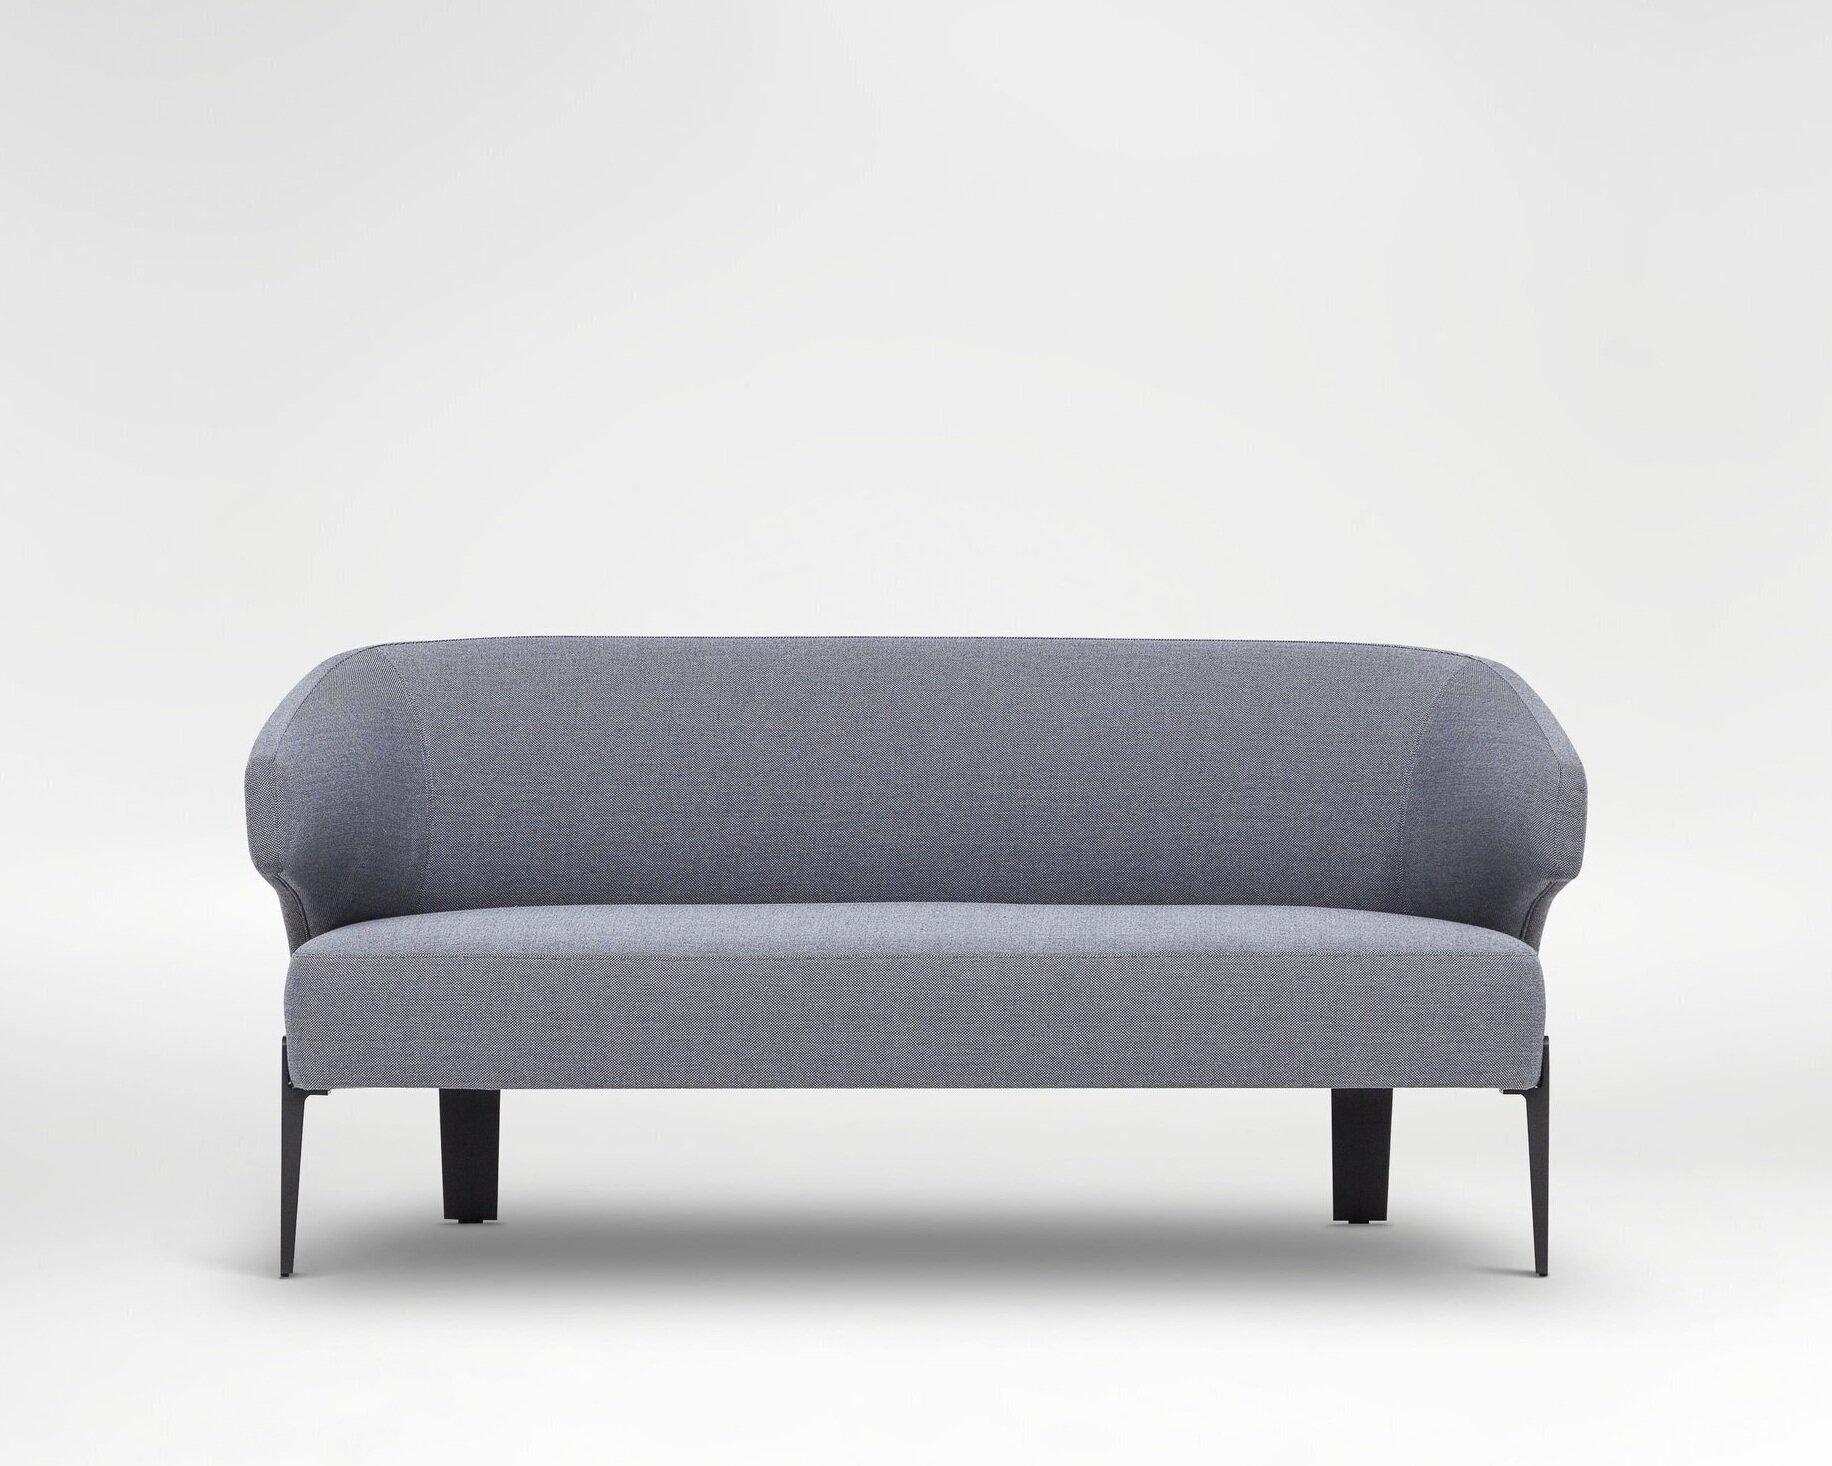 Embrace loveseat - Decidedly modern with retro roots. The perfect compact seating solution for small spaces.